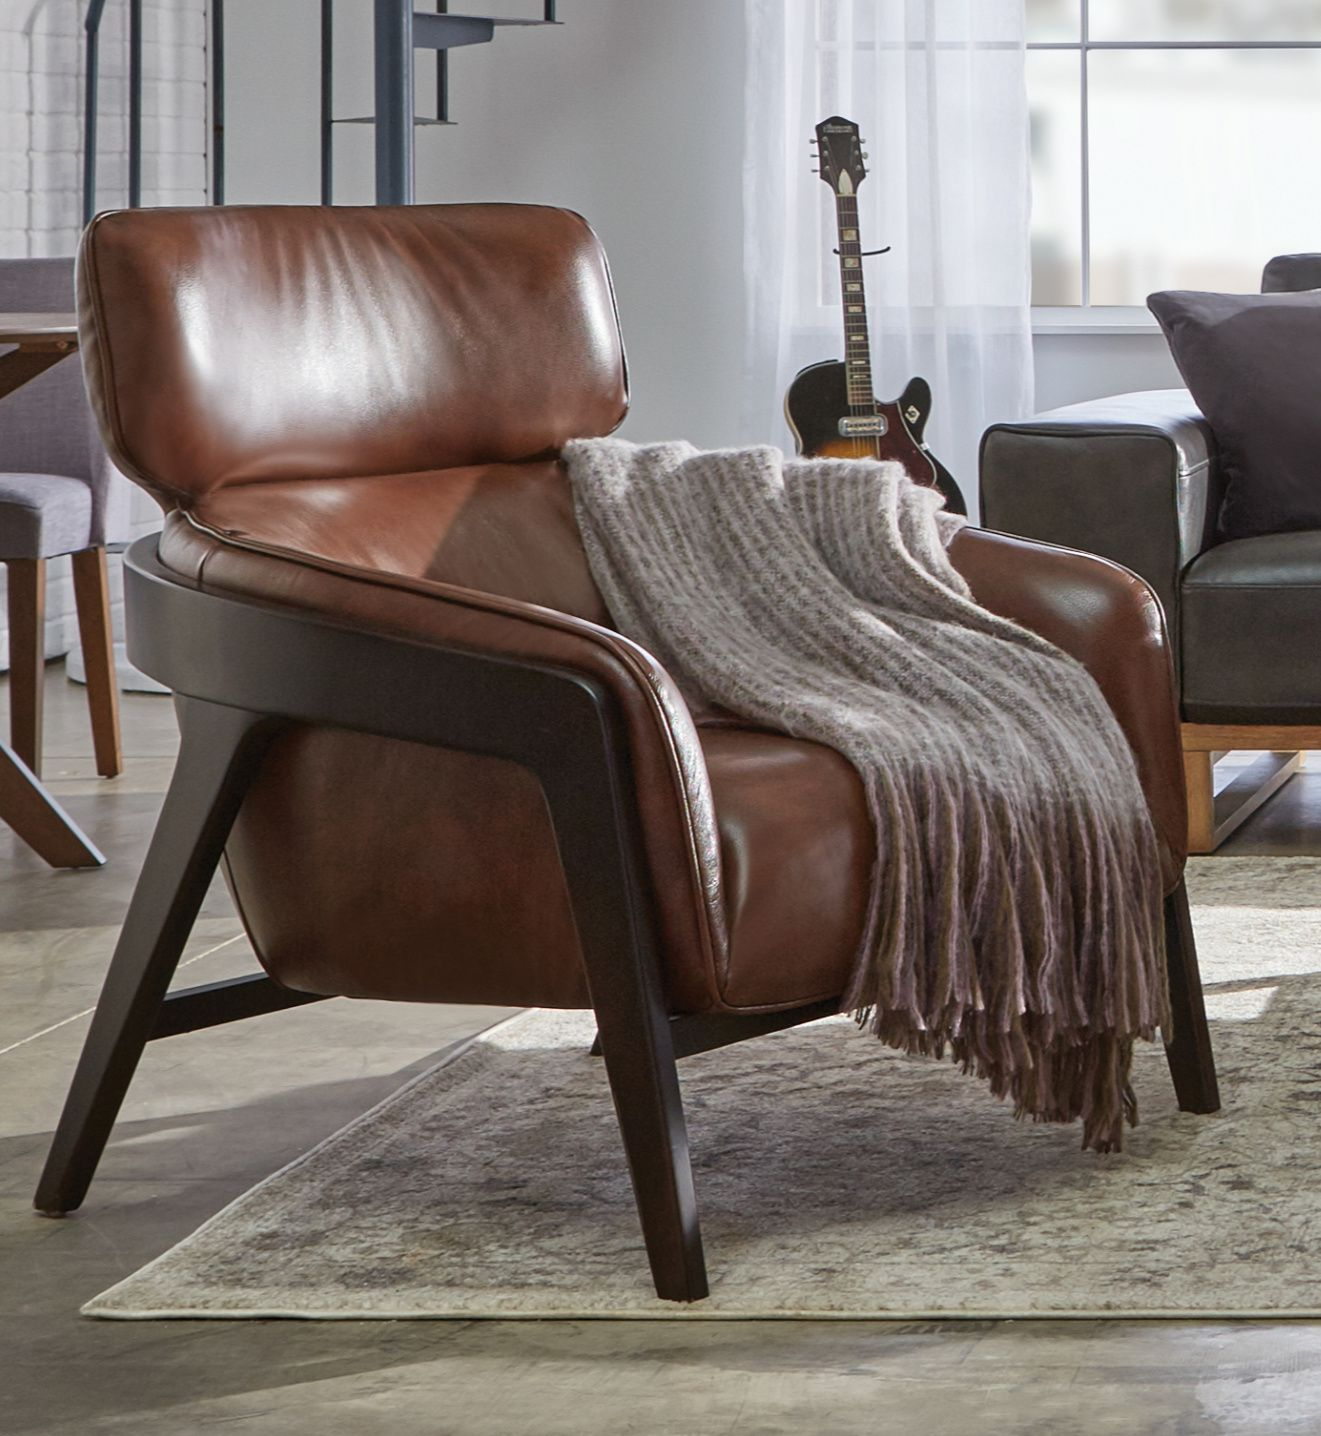 This Gorgeous Leather Chair Is All Retro Good Looks With Its Mid Century Style The Leather Chair Living Room Living Room Leather Rustic Living Room Furniture